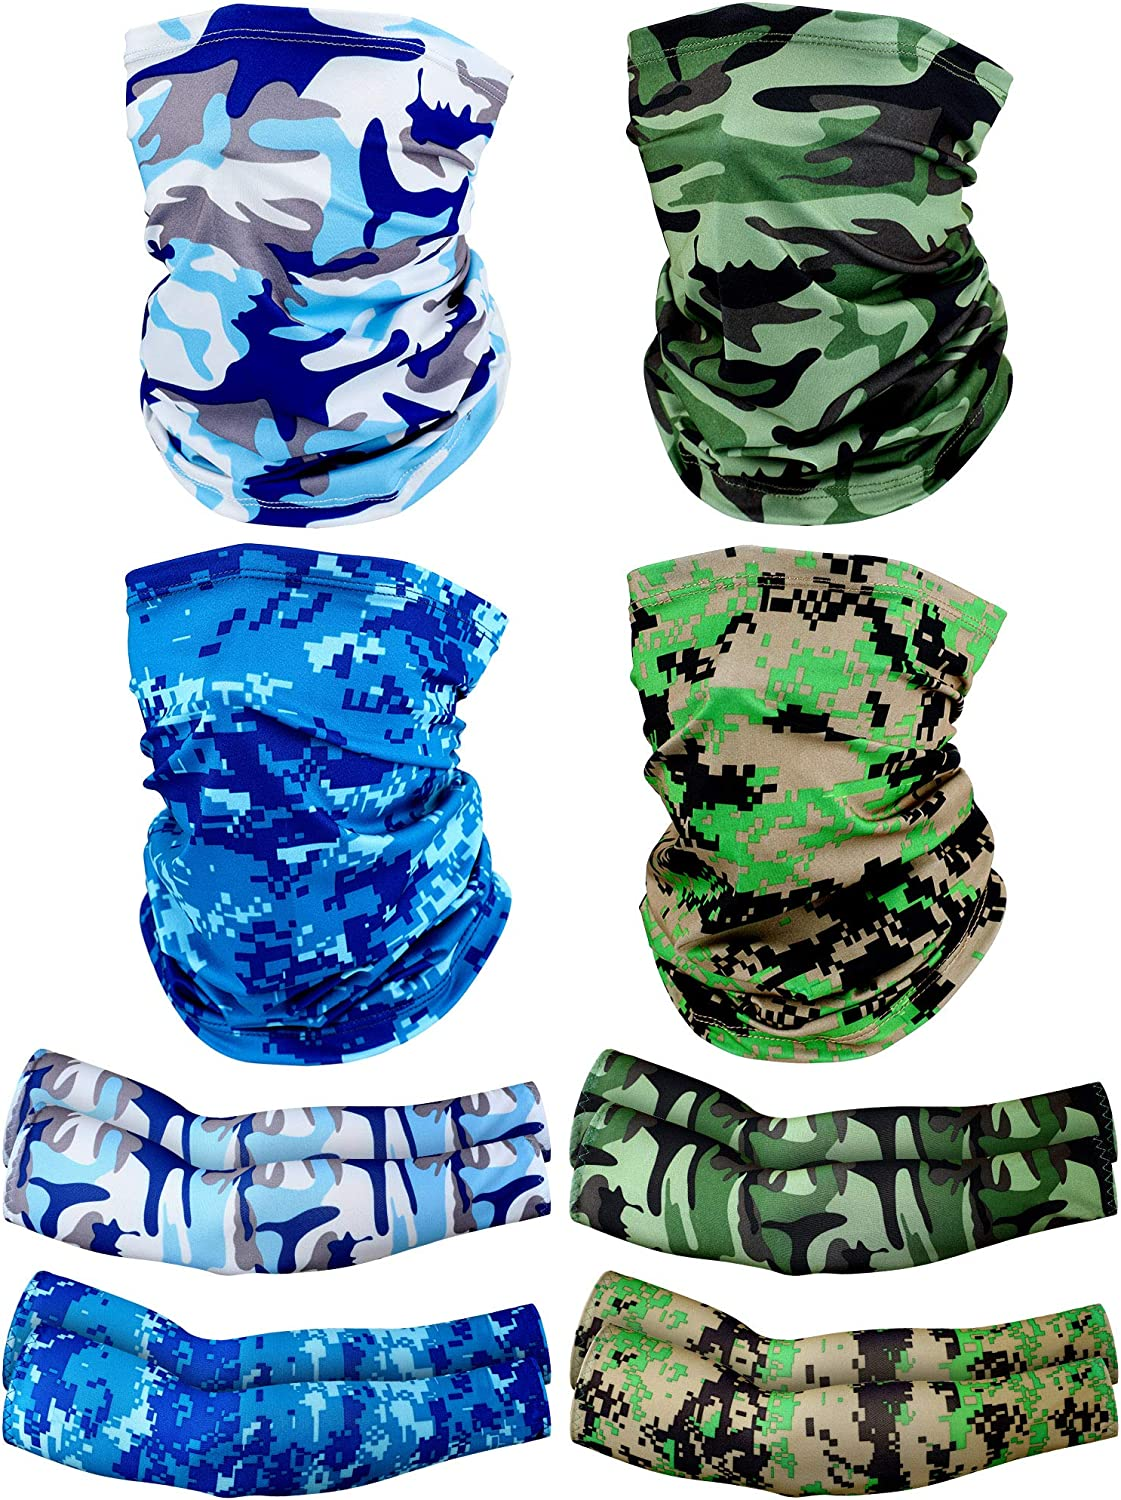 4 Pieces Face Cover Neck Gaiter and 4 Pairs Camouflage Cooling Arm Sleeves Summer UV Protection for Men Women